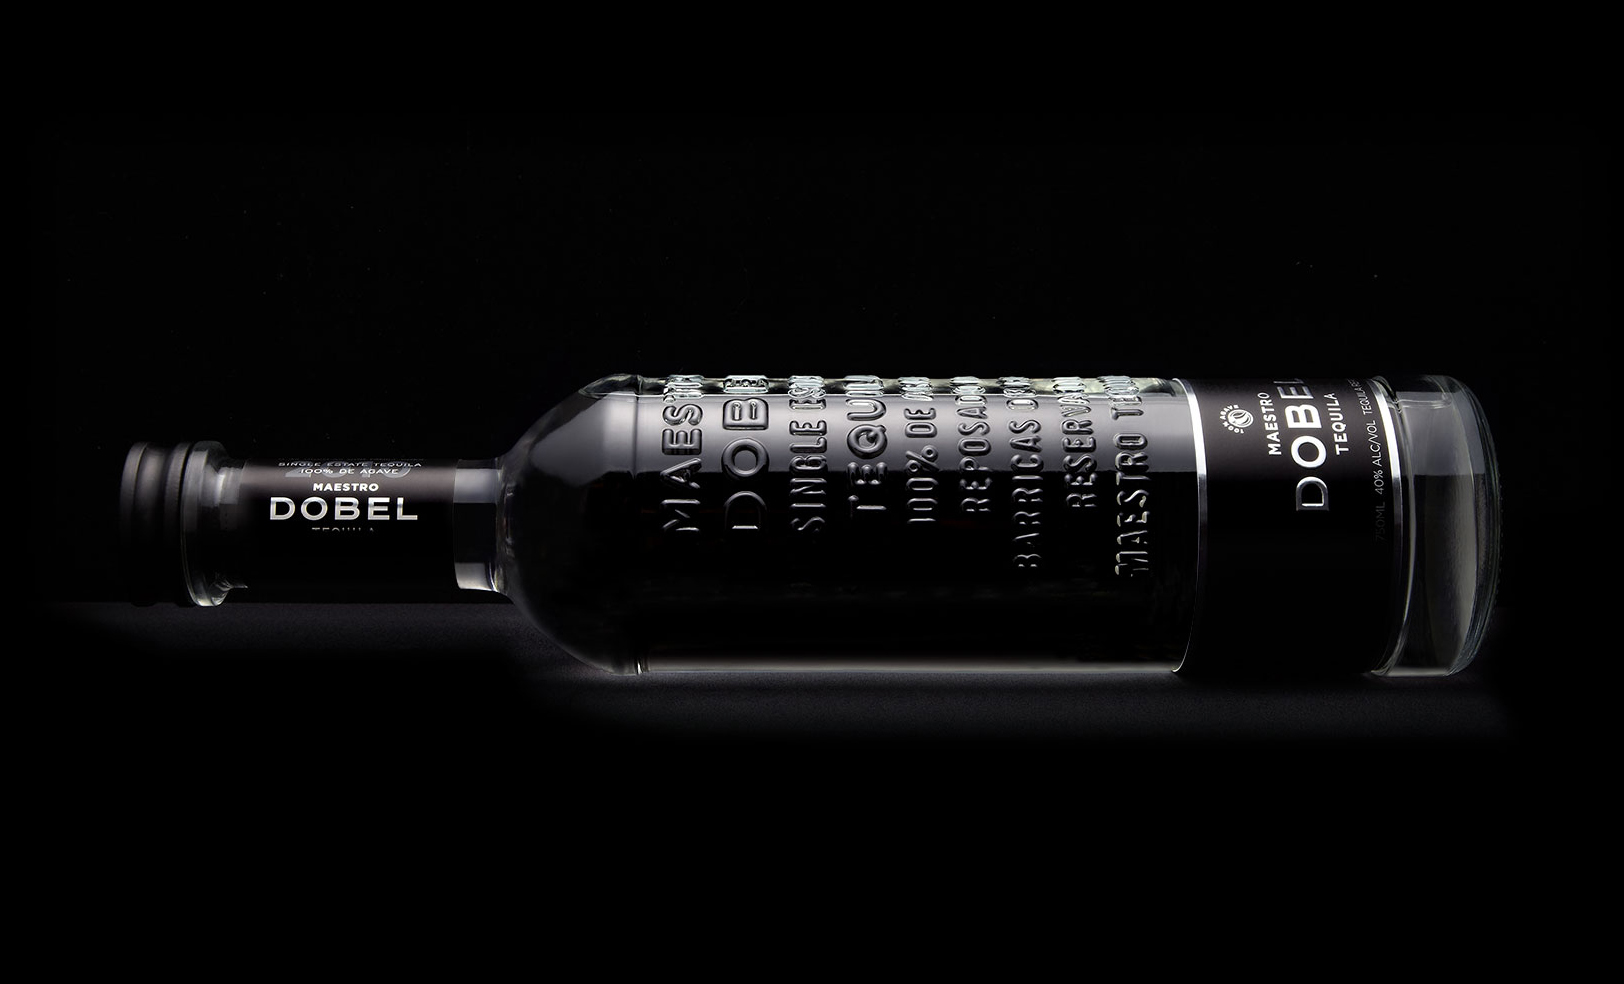 Red Productions Product & Still Life Photography Maestro Dobel Tequila Detail